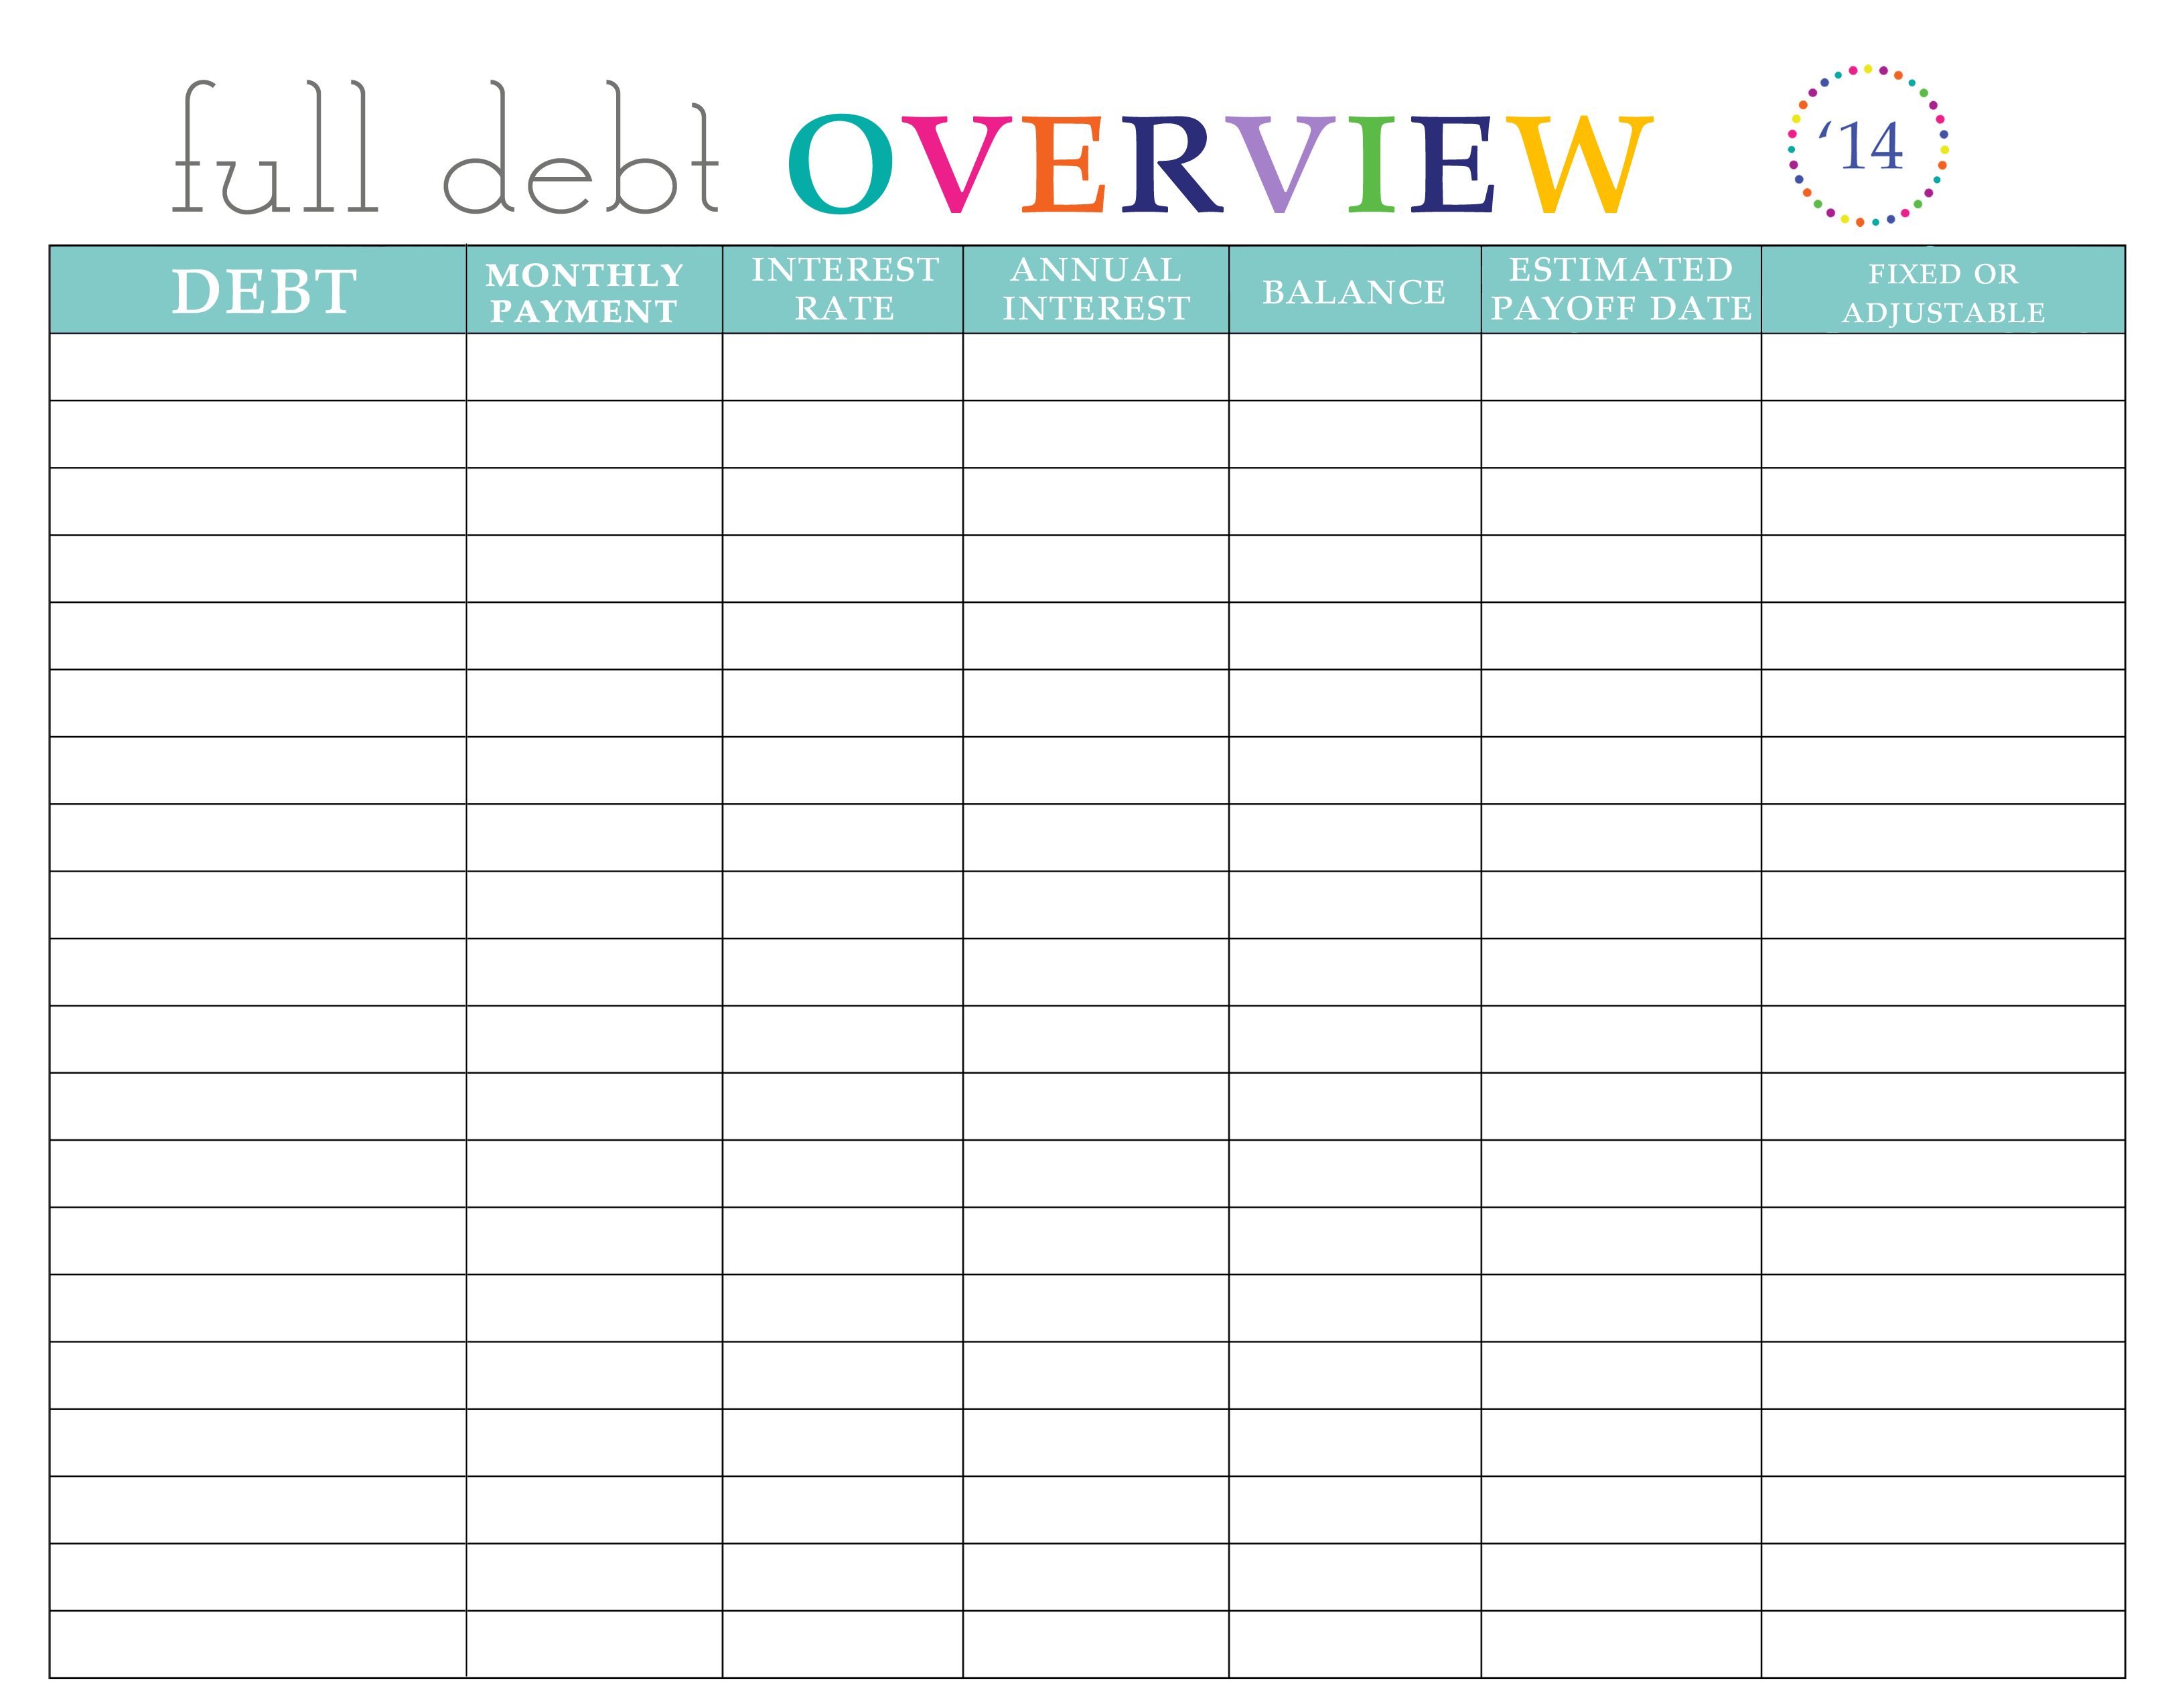 Paying Off Debt Worksheets - Free Printable Debt Payoff Worksheet | Debt Worksheet Printable